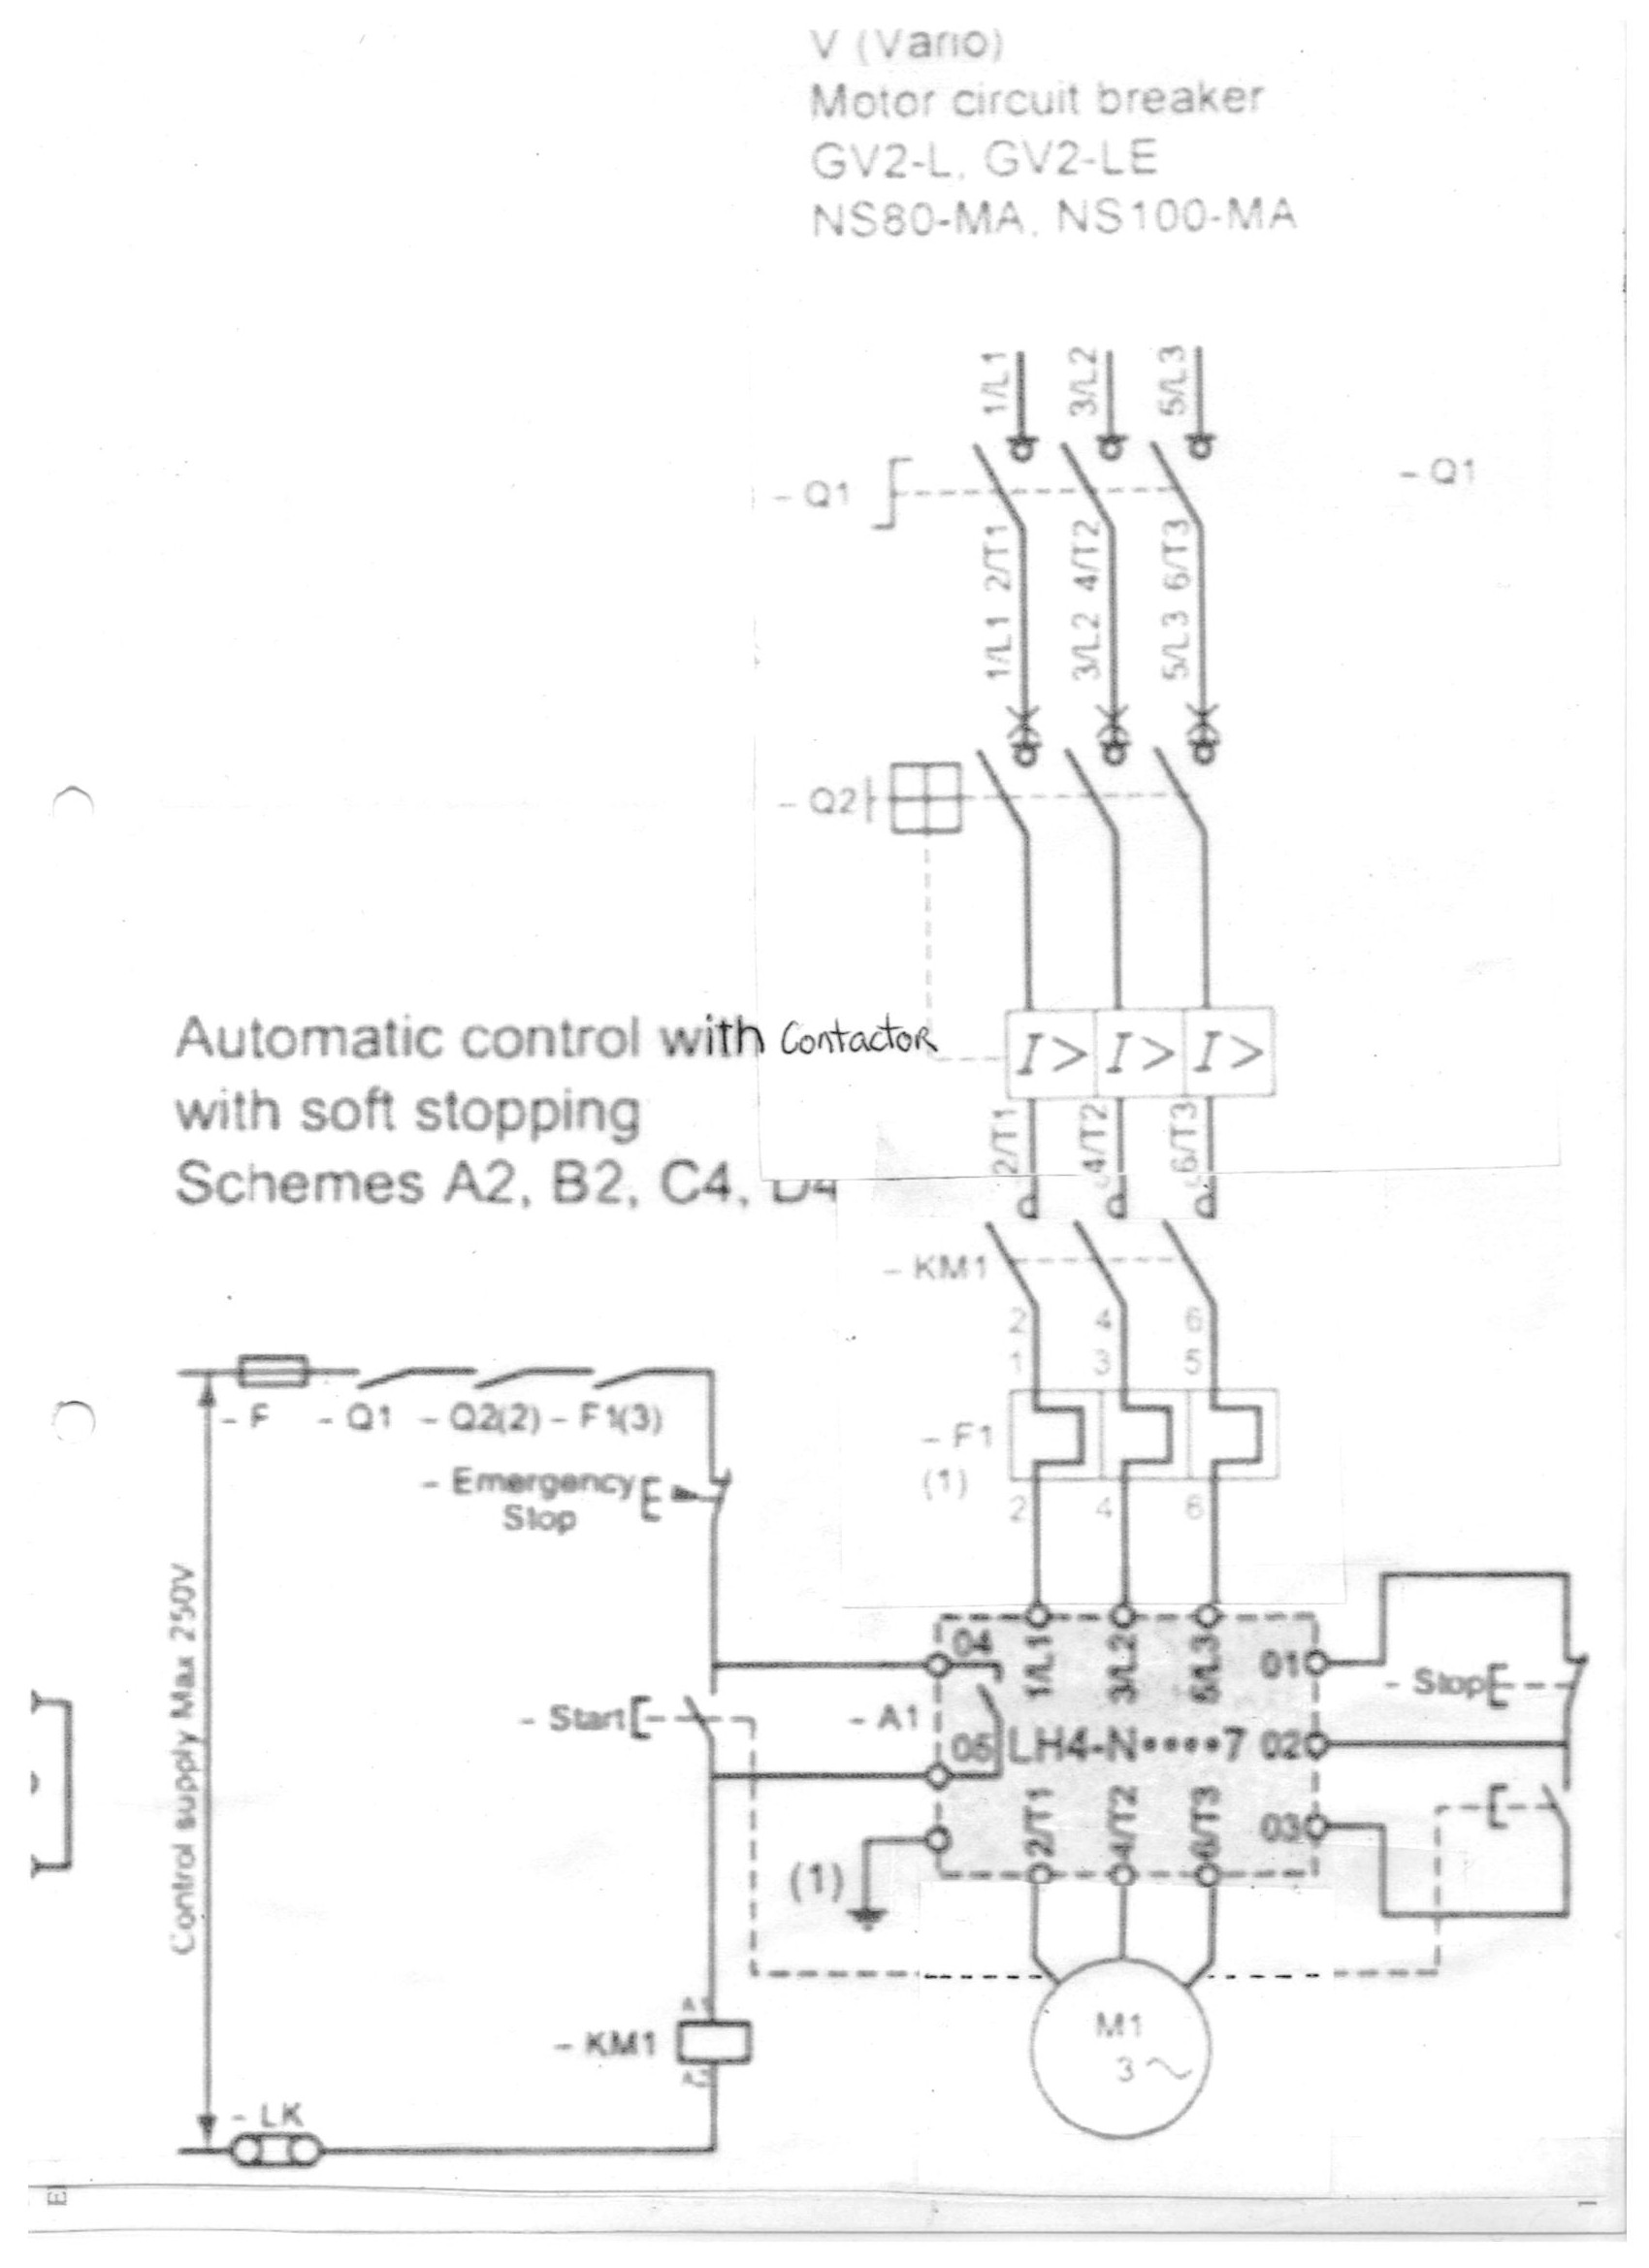 I Have An Electrical Drawing Of A Lh4n212qn7 Soft Start Soft